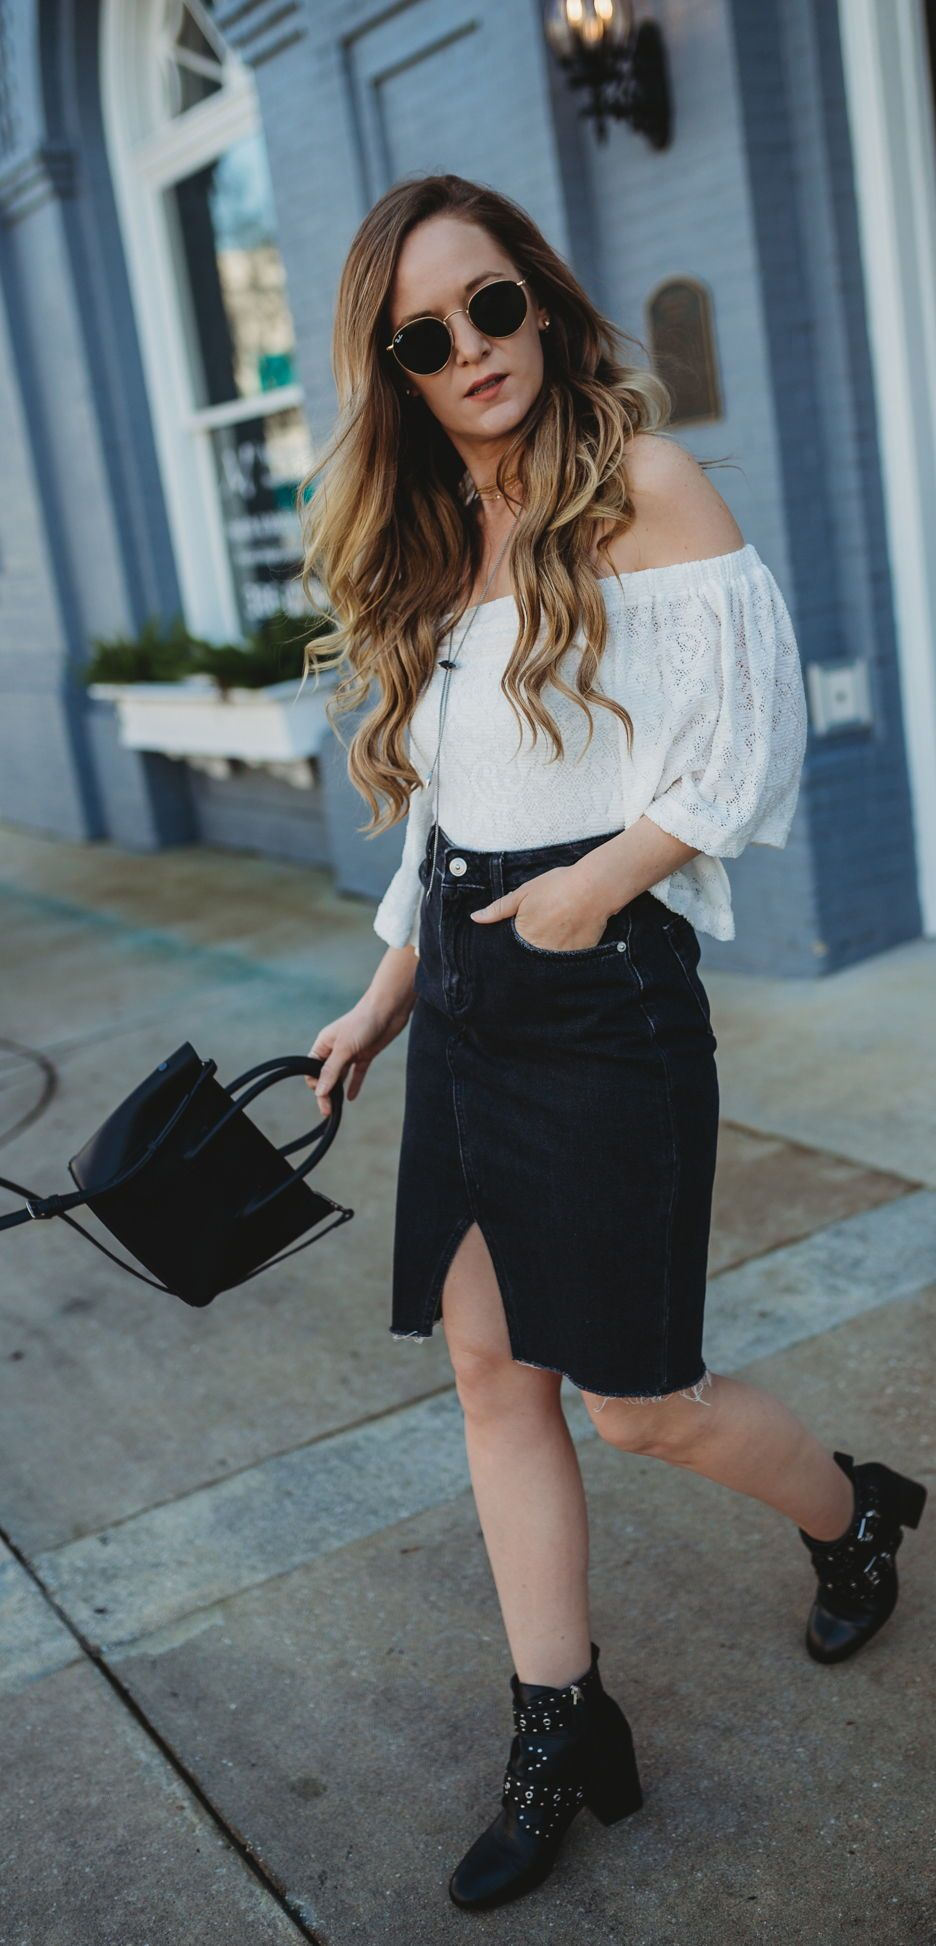 8e8a1235b Edgy black and white spring outfit styled with lace off the shoulder top,  denim pencil skirt, and studded ankle booties #edgyoutfit #studdedbooties  ...